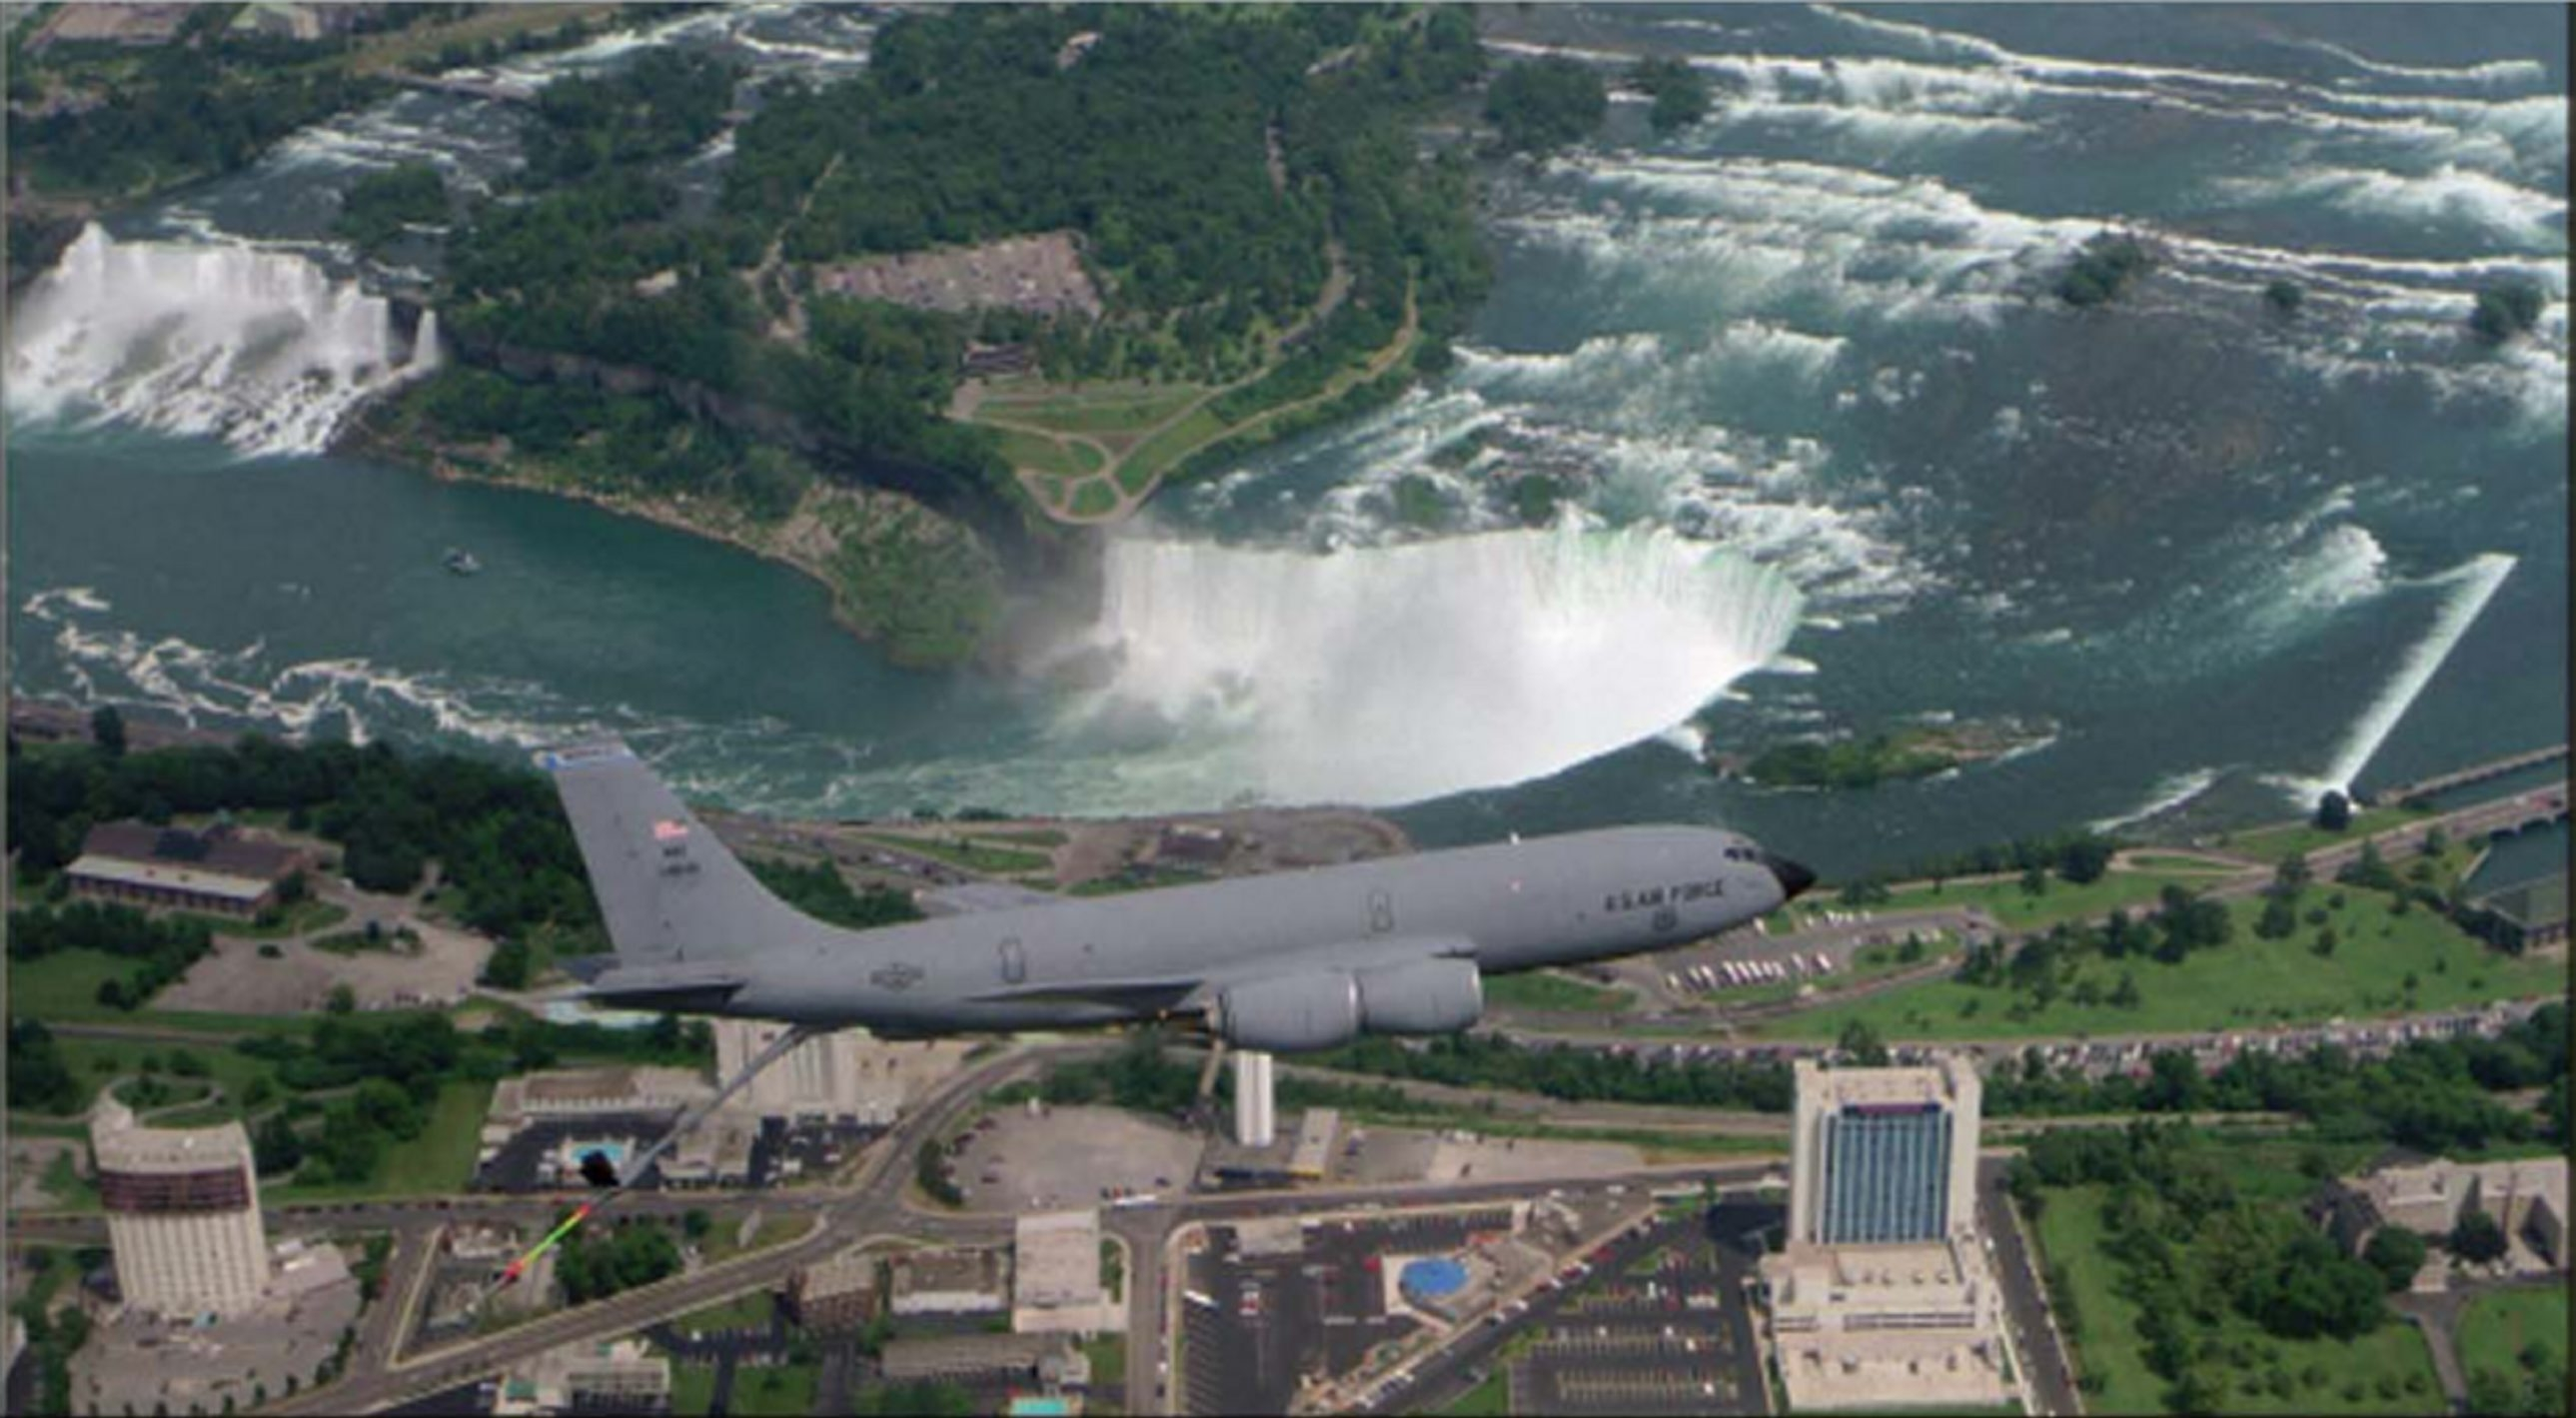 The 914th Airlift Wing at the Niagara Falls Air Reserve Station will begin flying KC-135 refueling tankers.